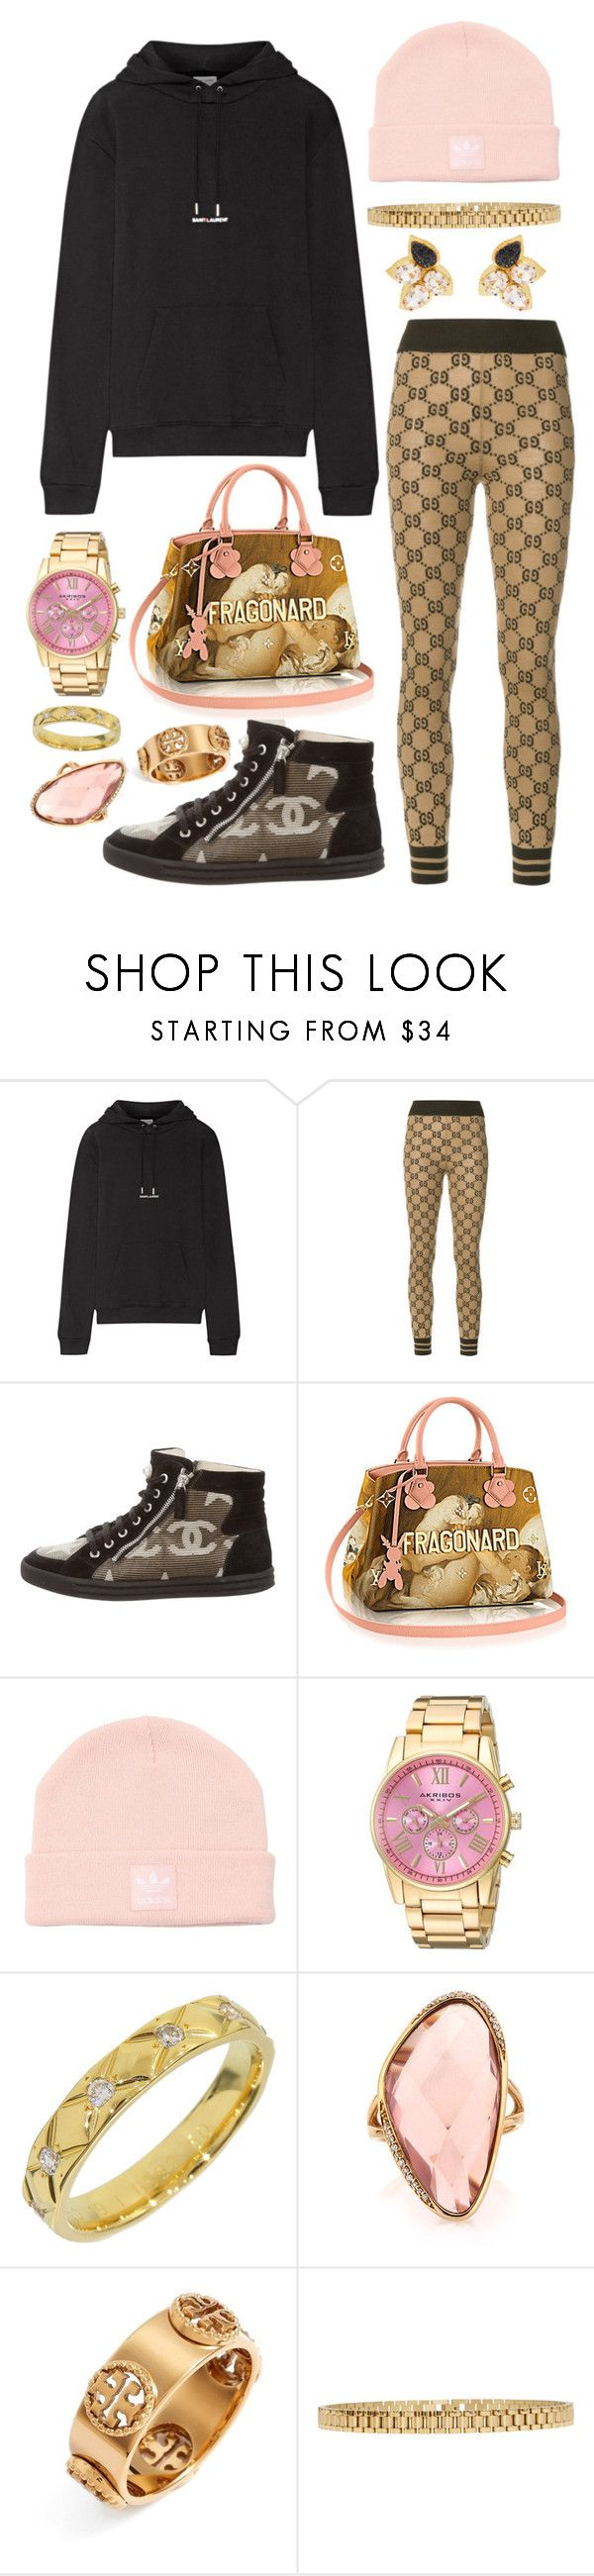 """""""3452"""" by lexi96z ❤ liked on Polyvore featuring Yves Saint Laurent, Gucci, Chanel, adidas Originals, Akribos XXIV, Mark Broumand, Tory Burch, AMBUSH and Carol Kauffmann"""